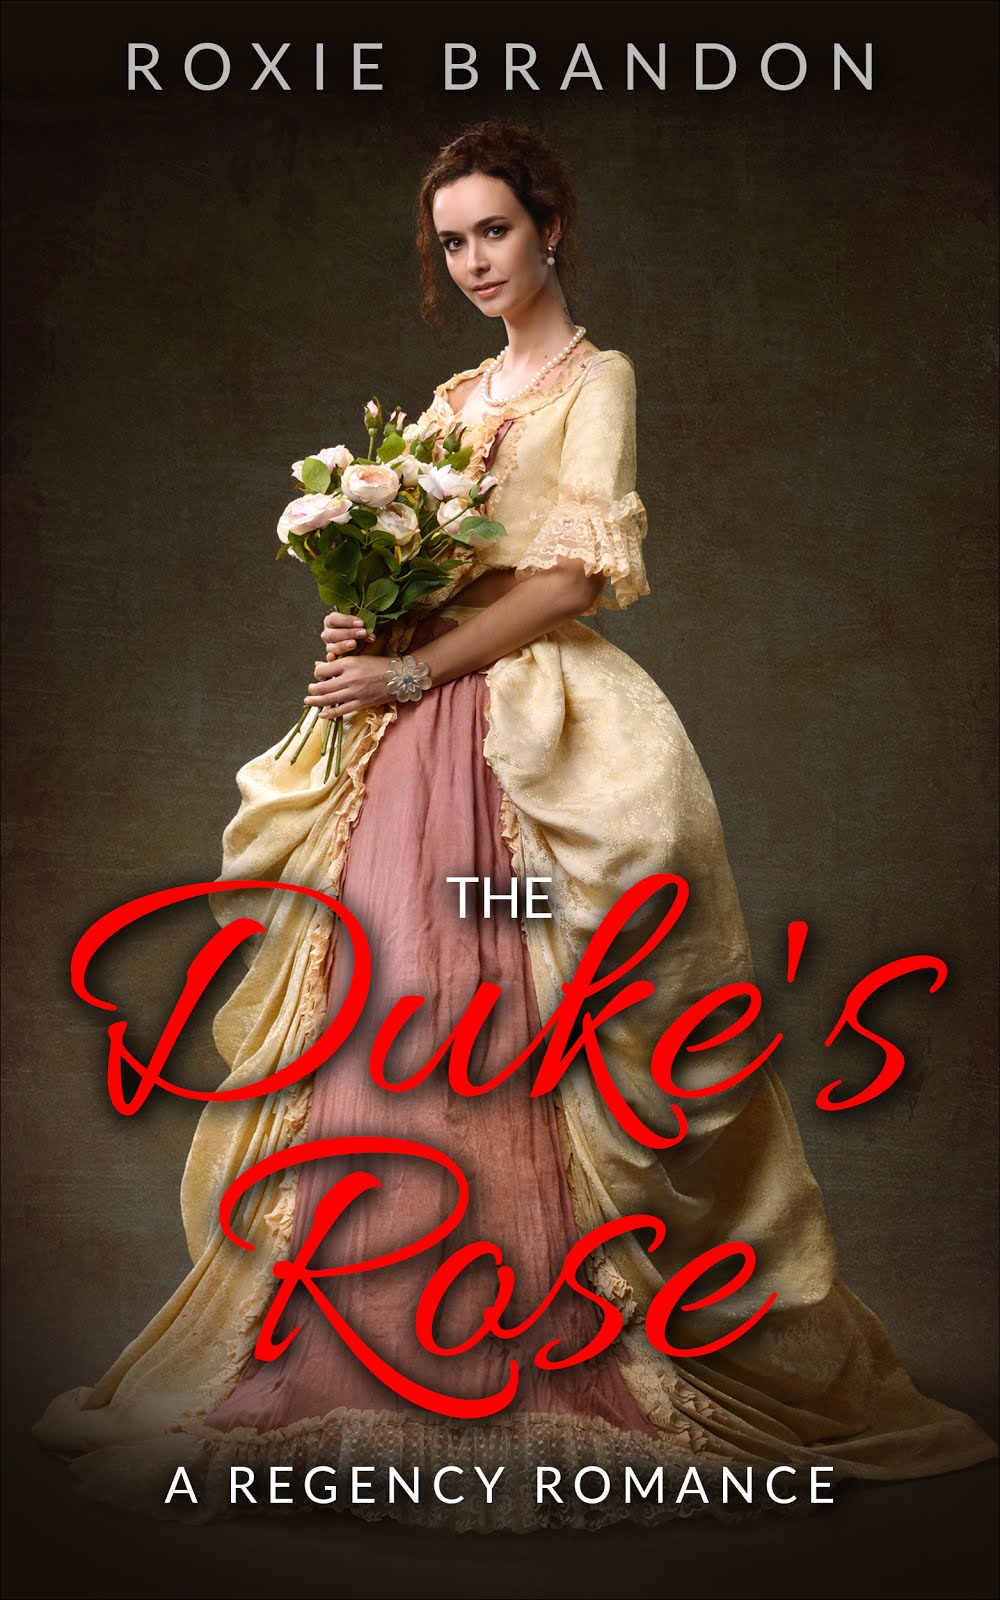 Regency romance for just 99 cents!